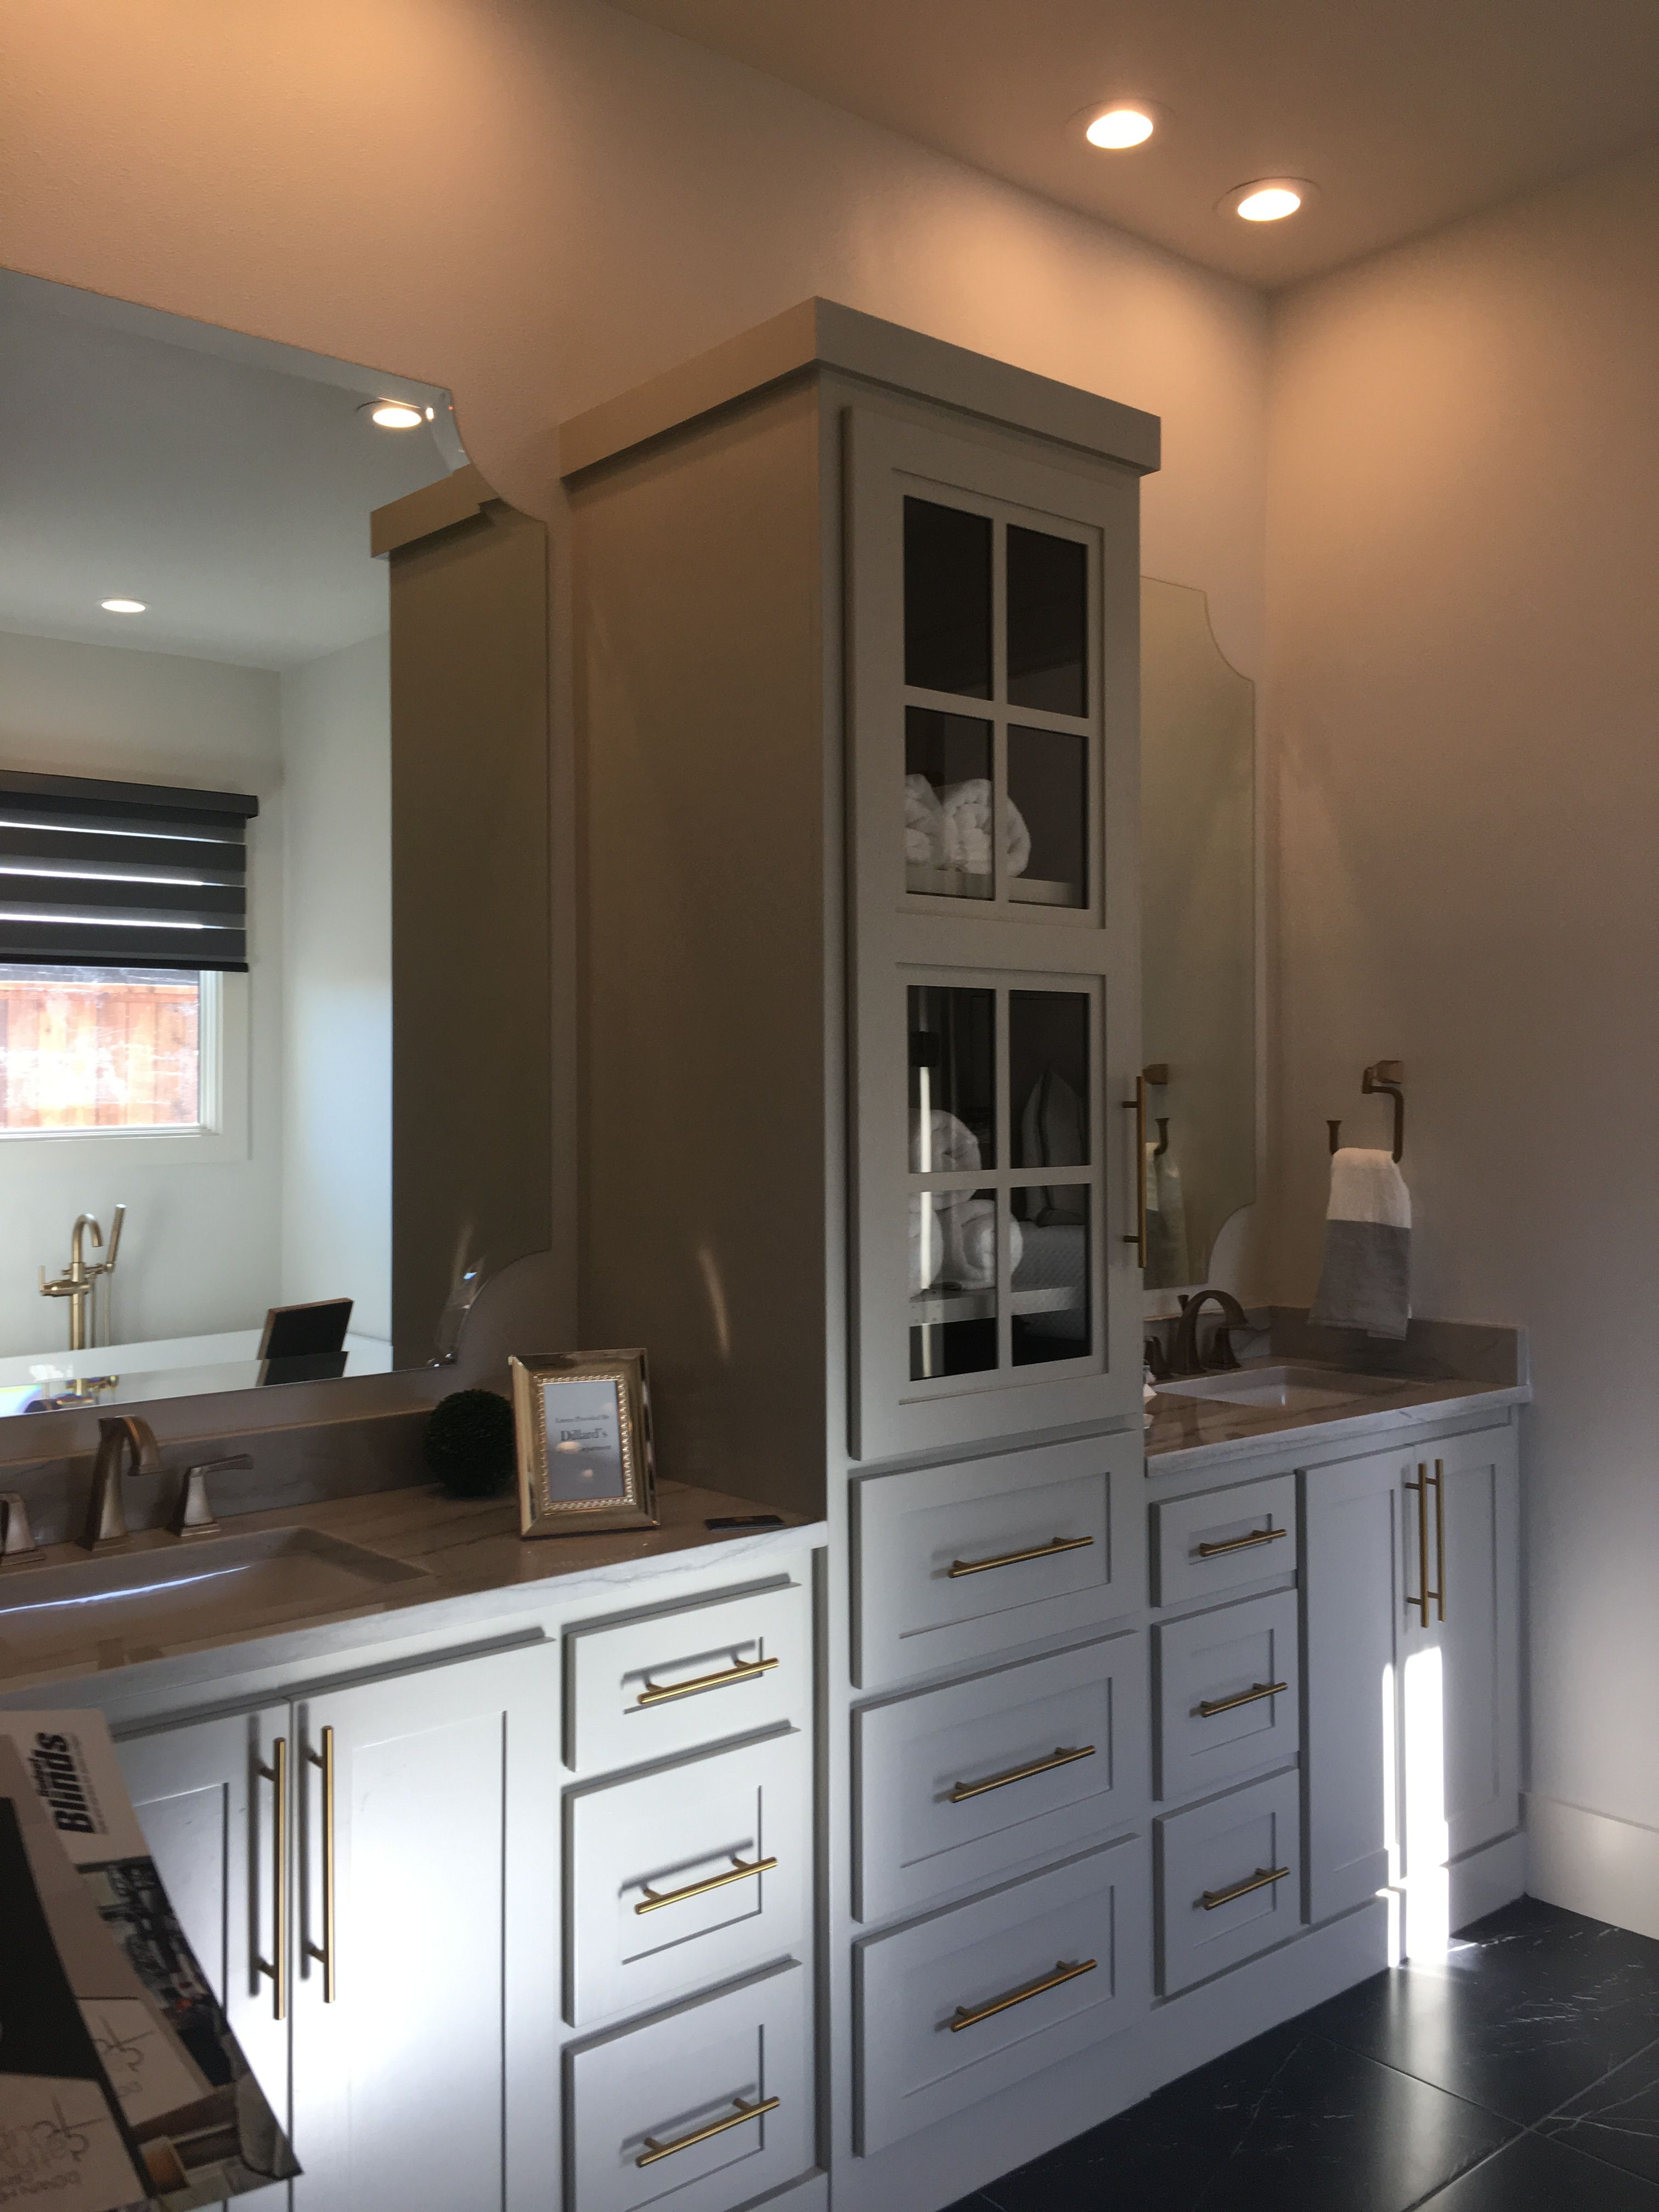 Pin By Gail Gonzalez On Lubbock Parade Of Homes Kitchen Cabinets Home Decor Decor